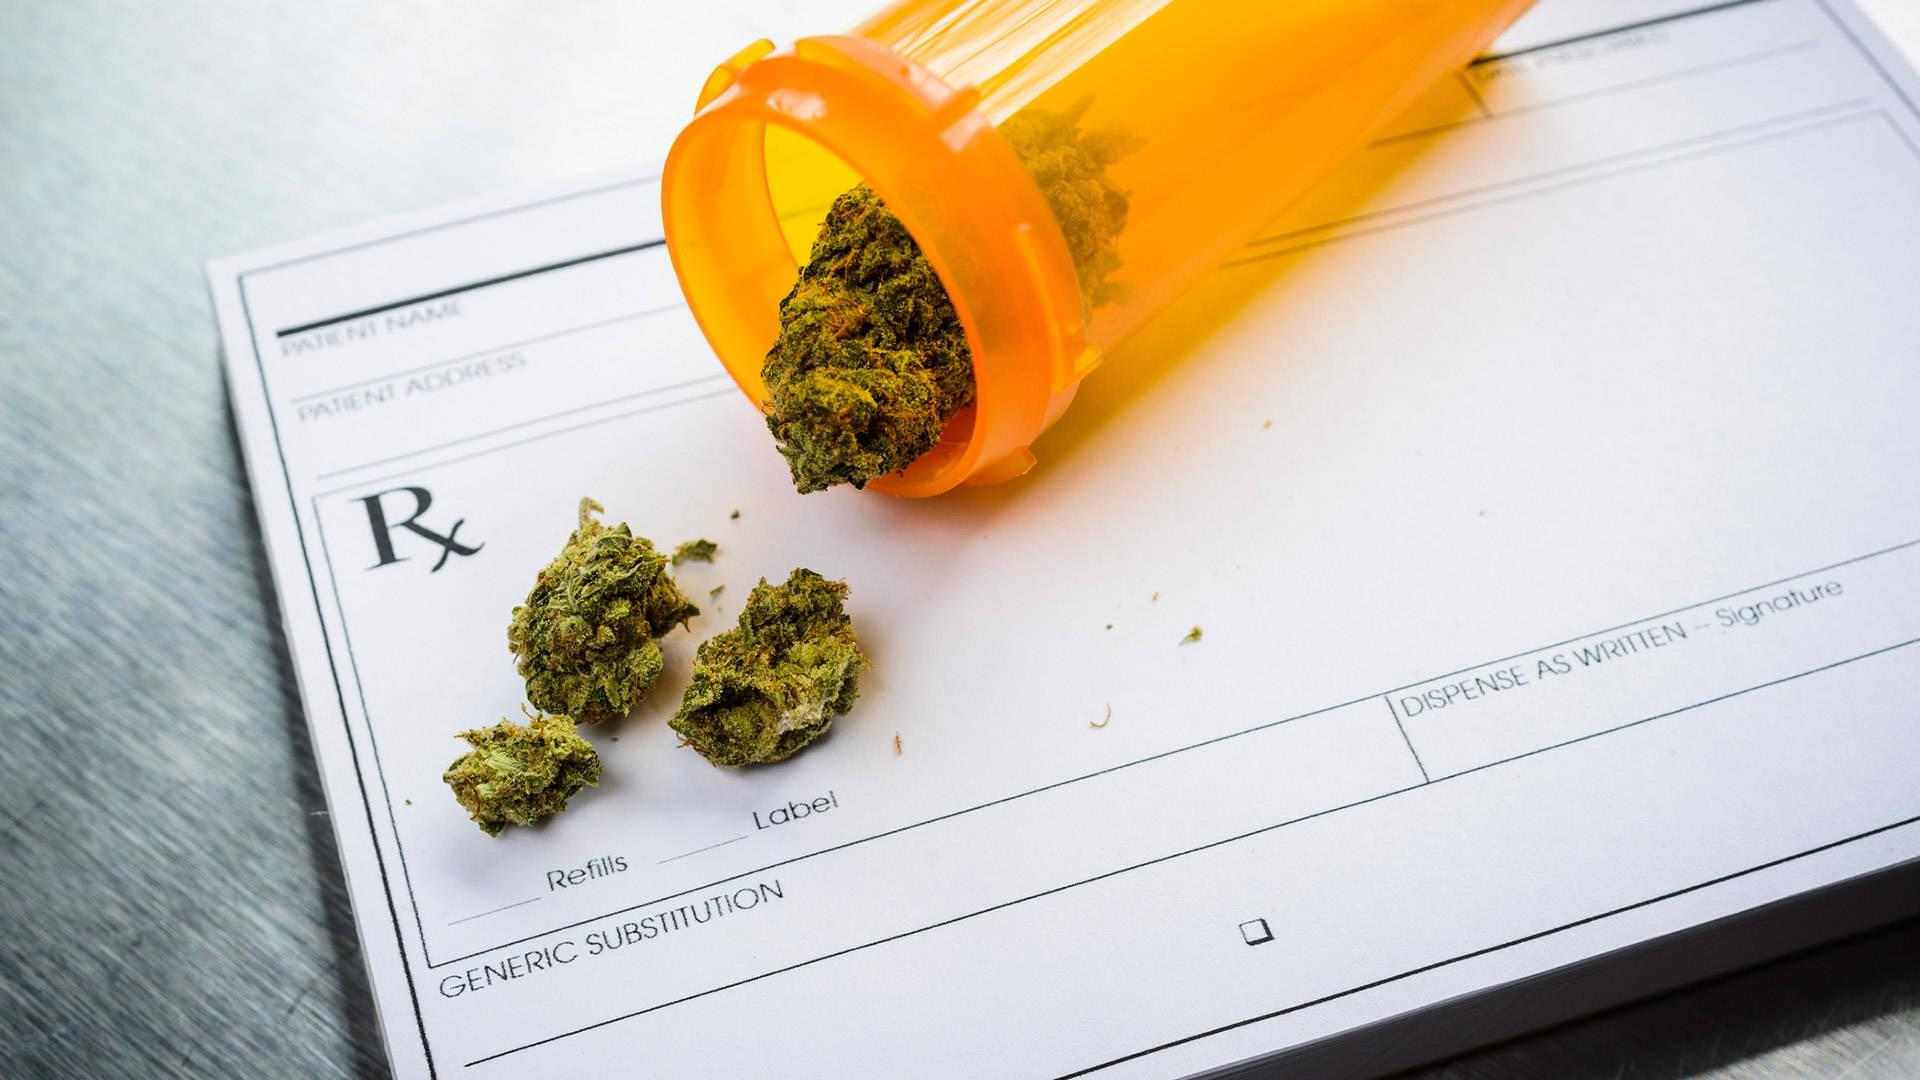 Massachusetts Supreme Court Opens the Door for Medical Marijuana Users to Sue Their Employers